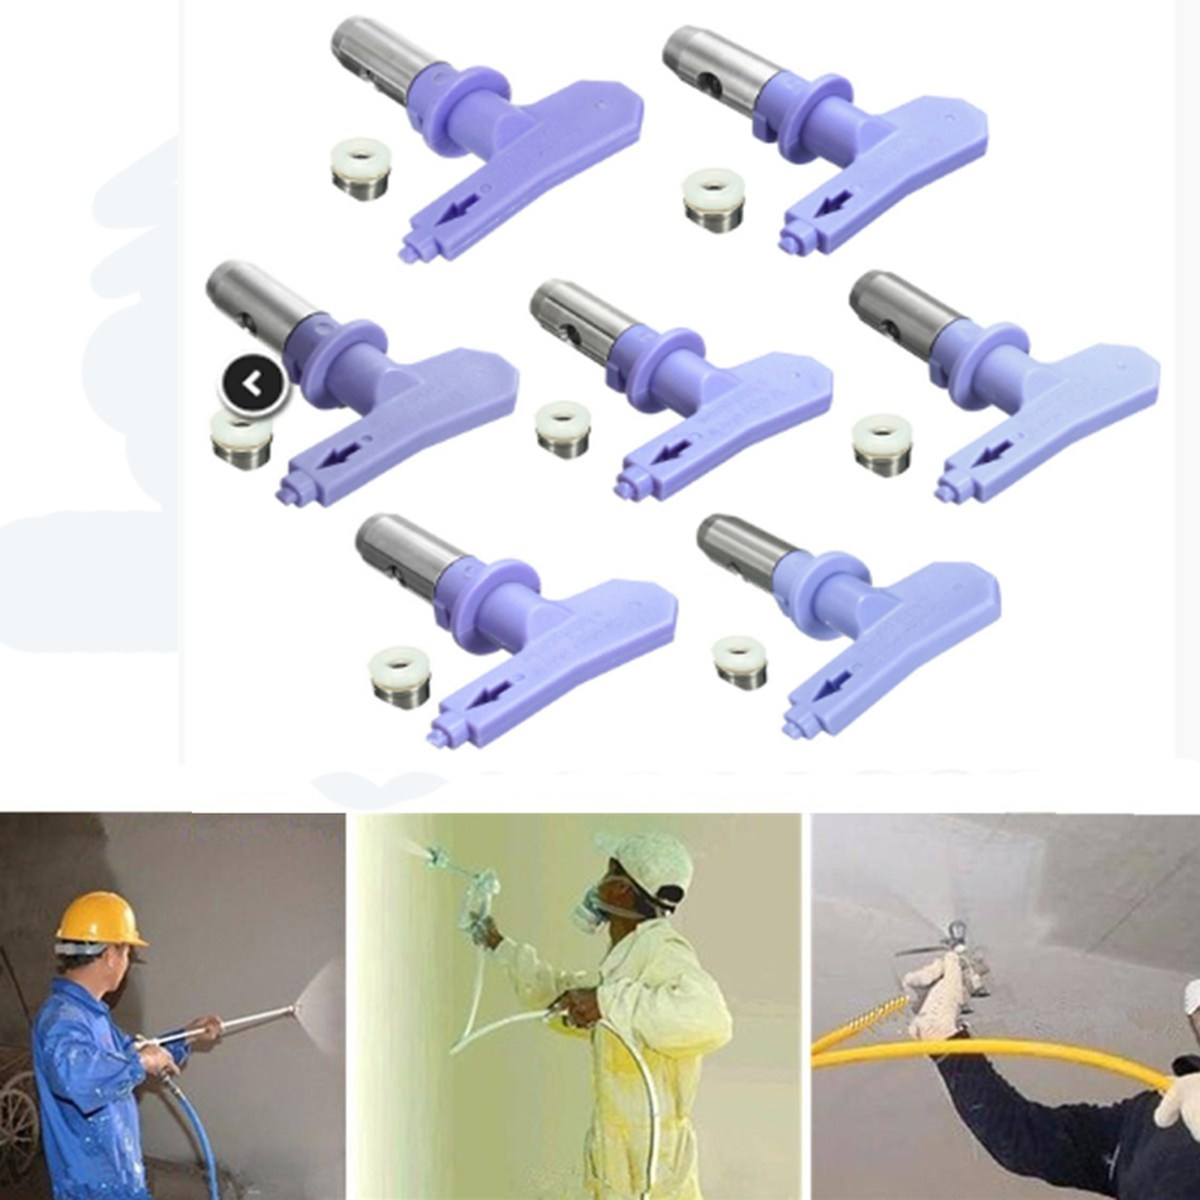 3 Series New Airless Spray Tips Nozzle For Paint Sprayer For Airless Spray Gun And Paint Sprayer